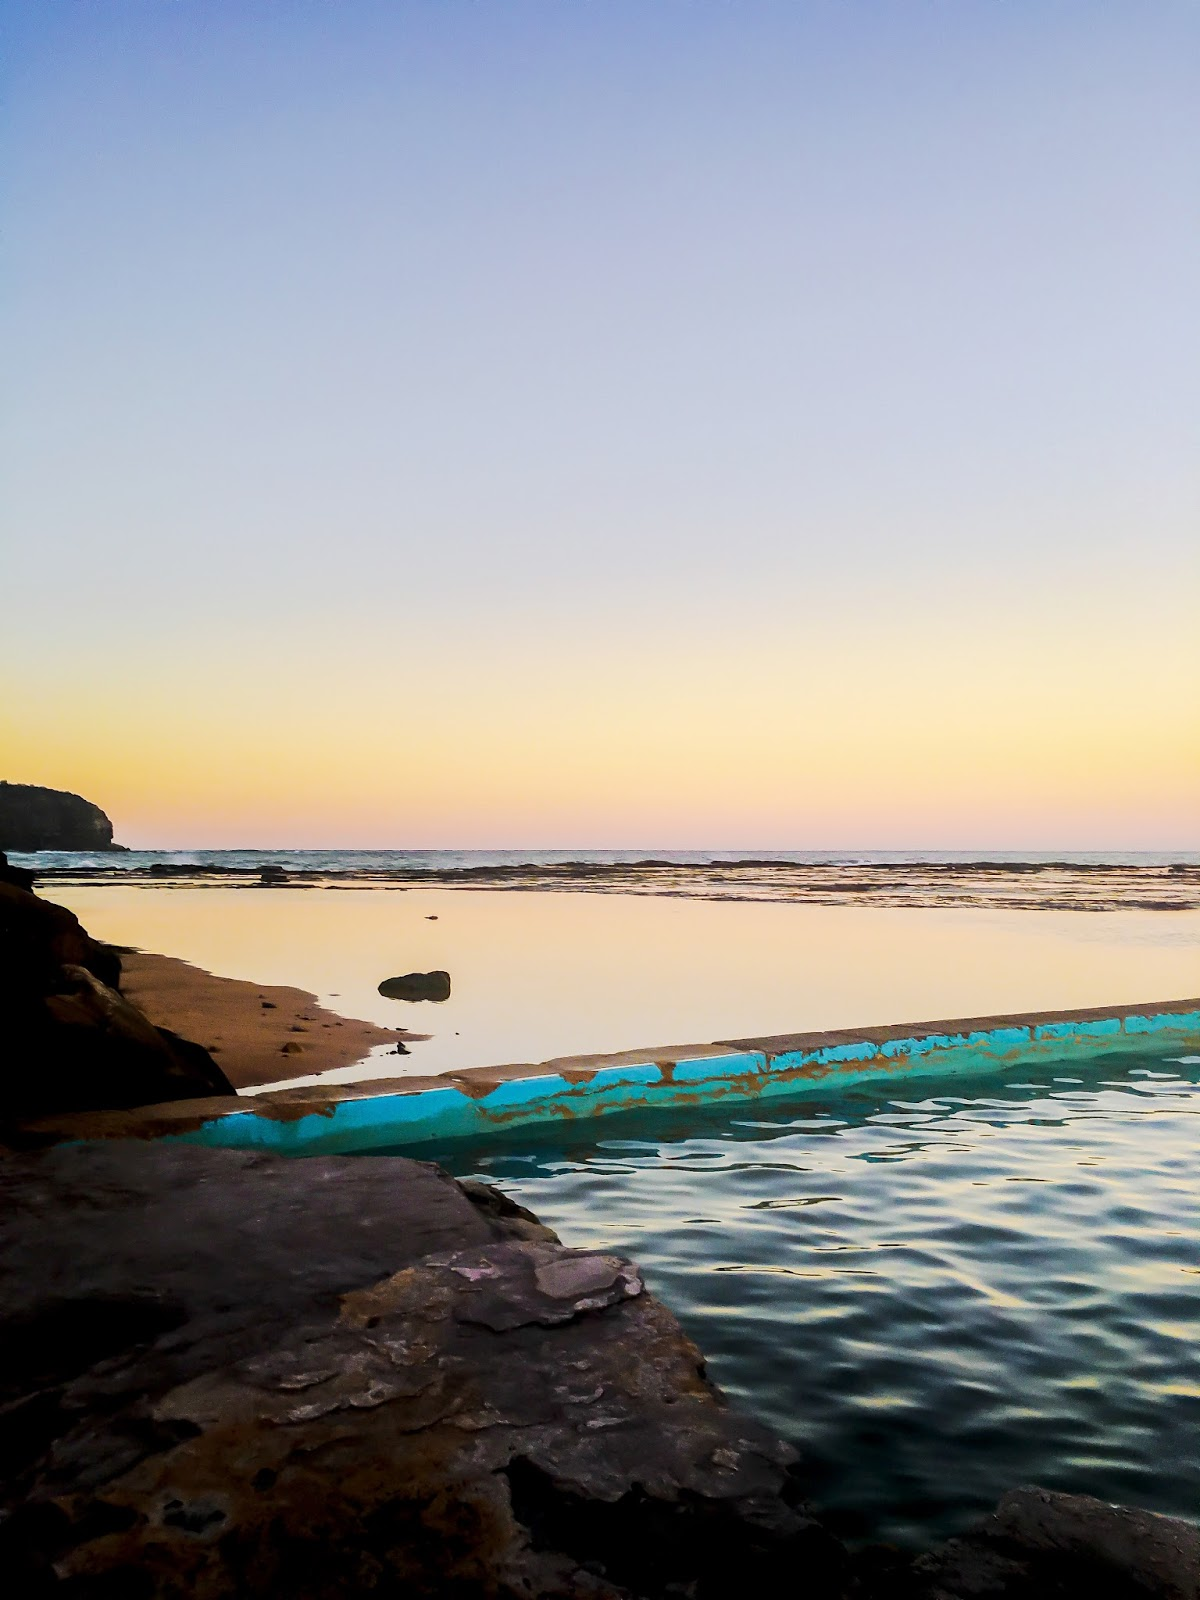 Sunset in Narrabeen Rockpool, Sydney